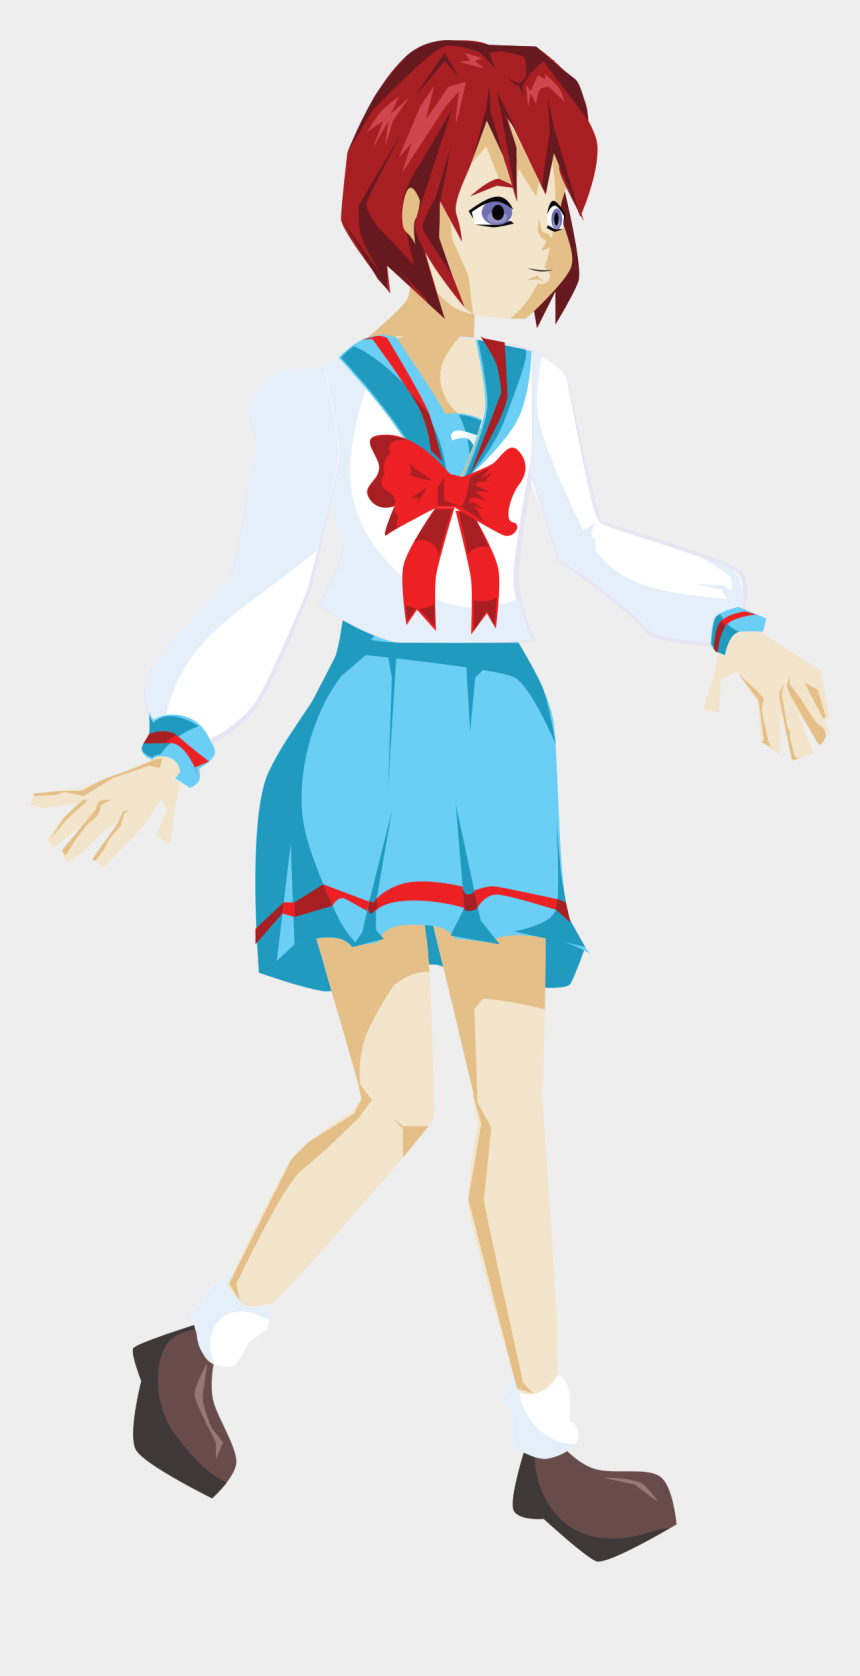 girl clipart, Cartoons - Anime Png Images - Girl School Girl Png